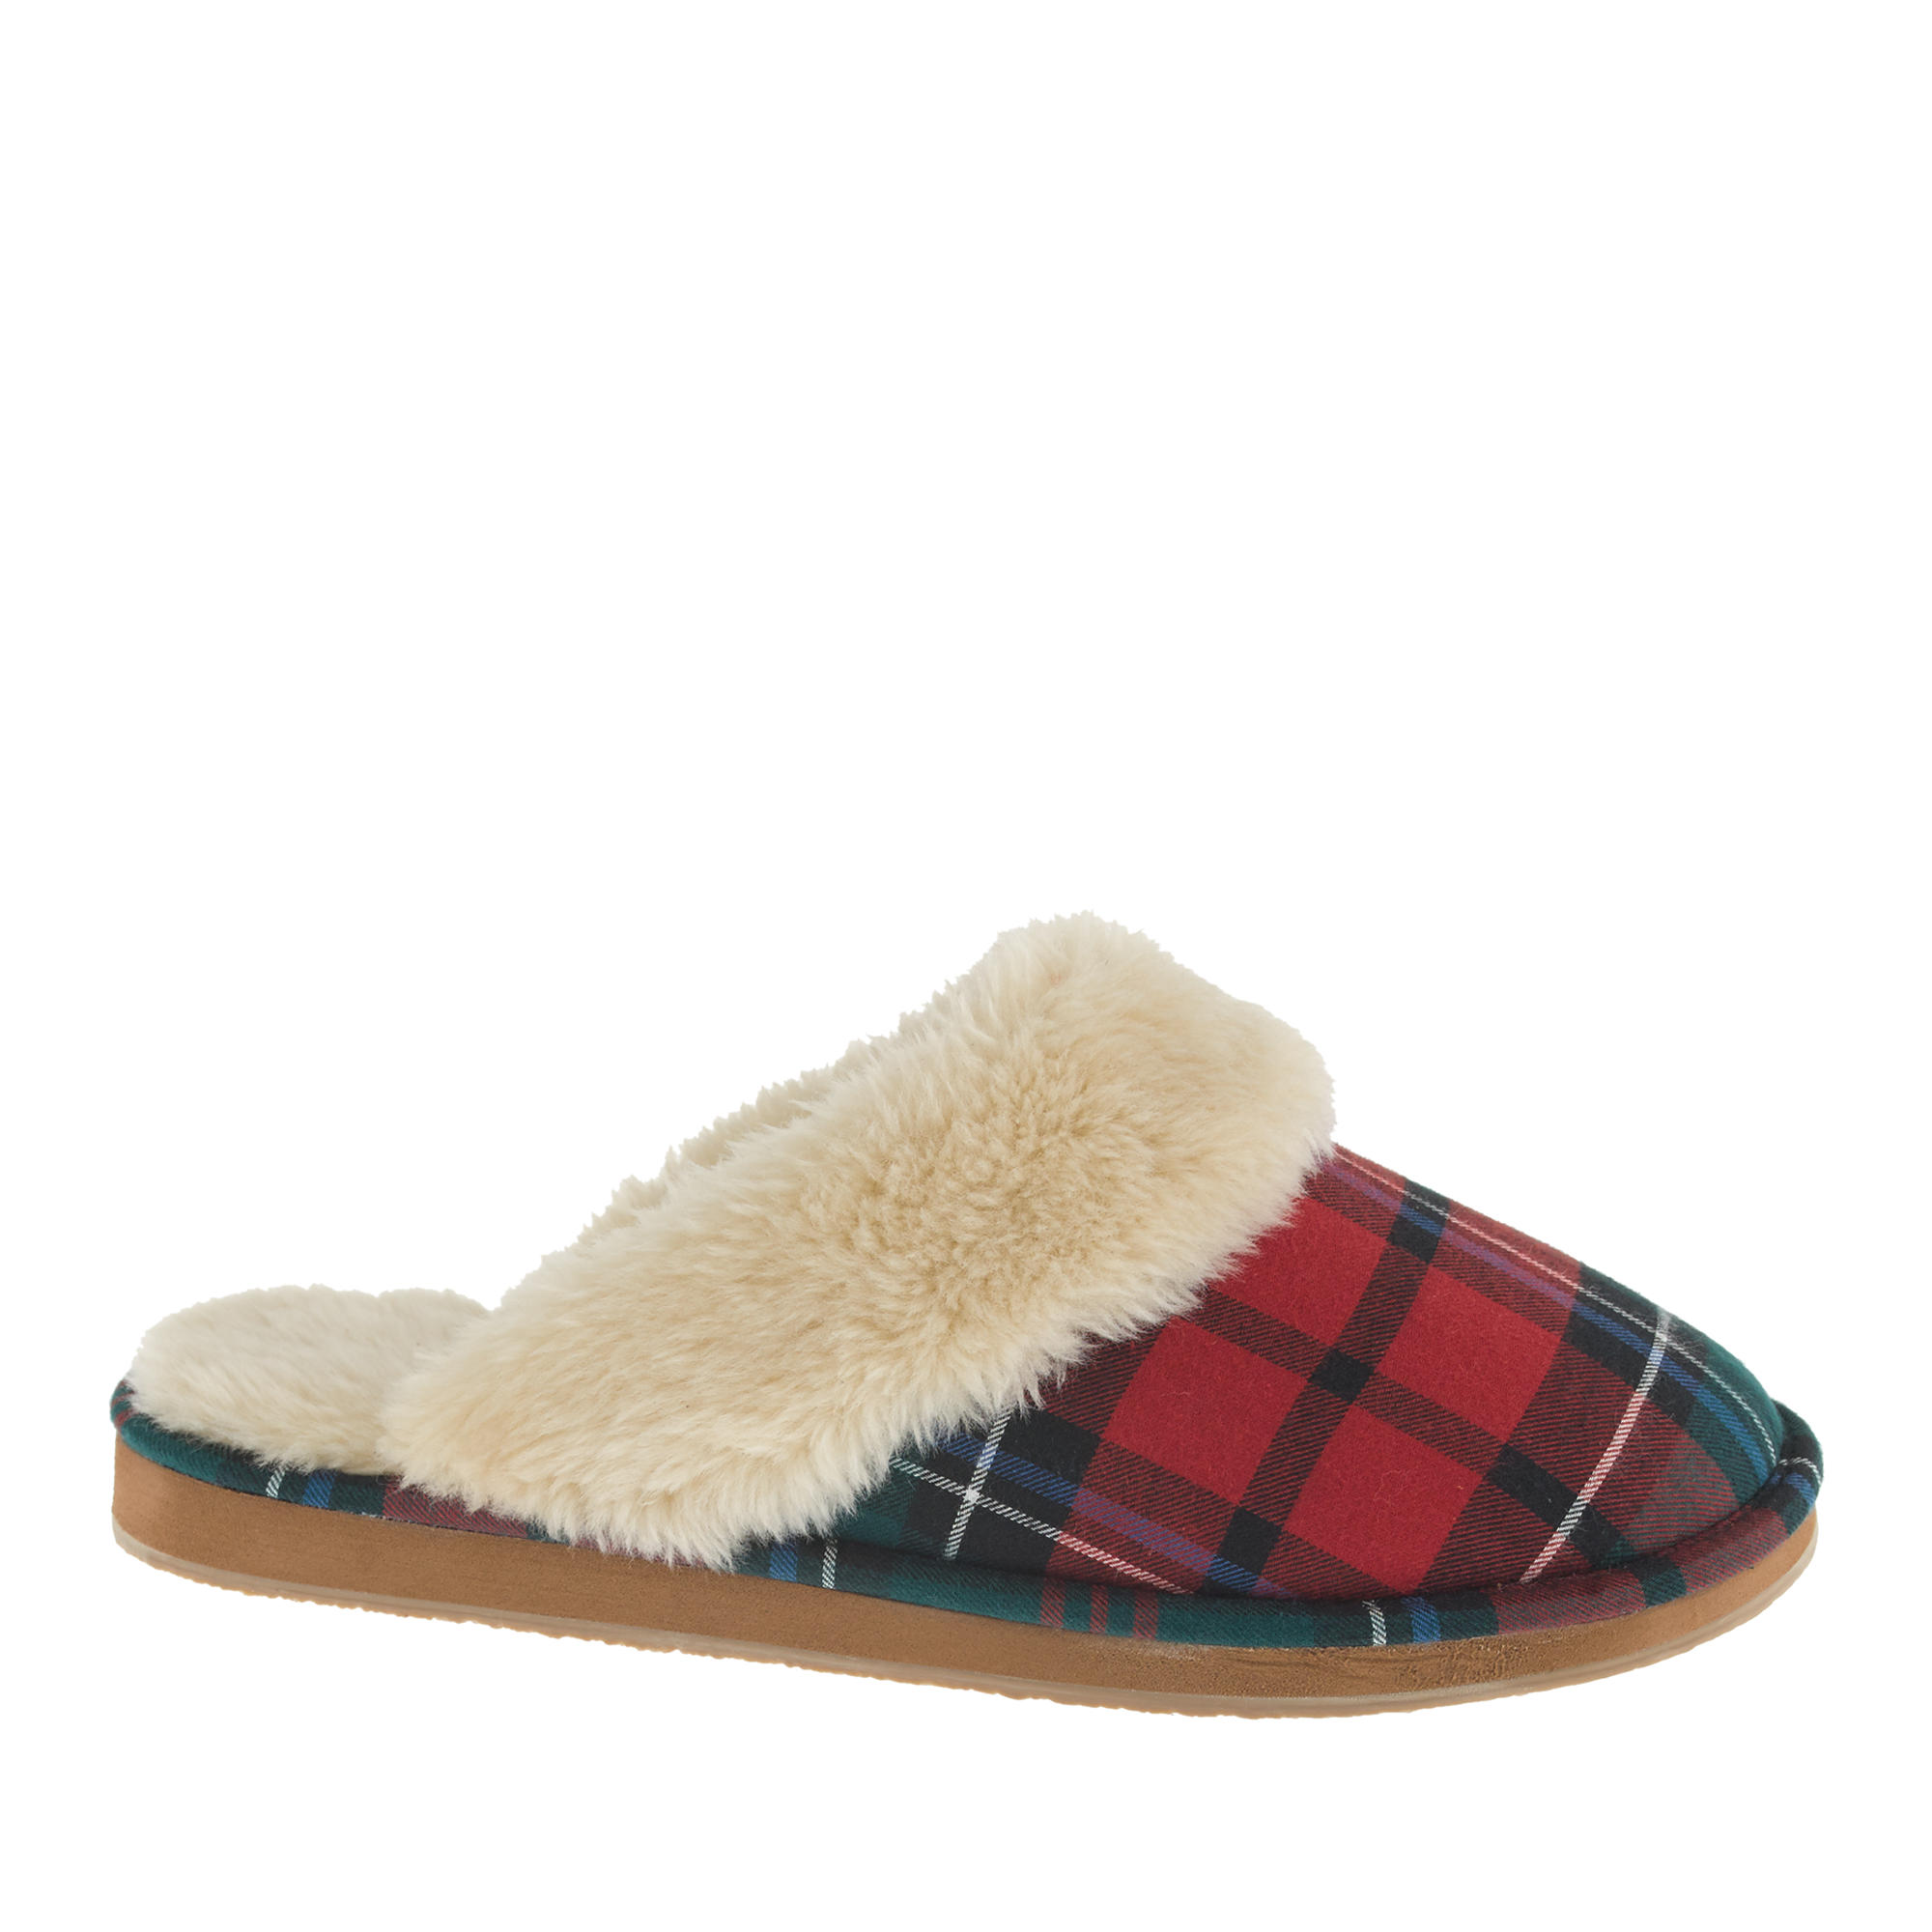 Women 39 s plaid shearling scuffs j crew for J crew bedroom slippers